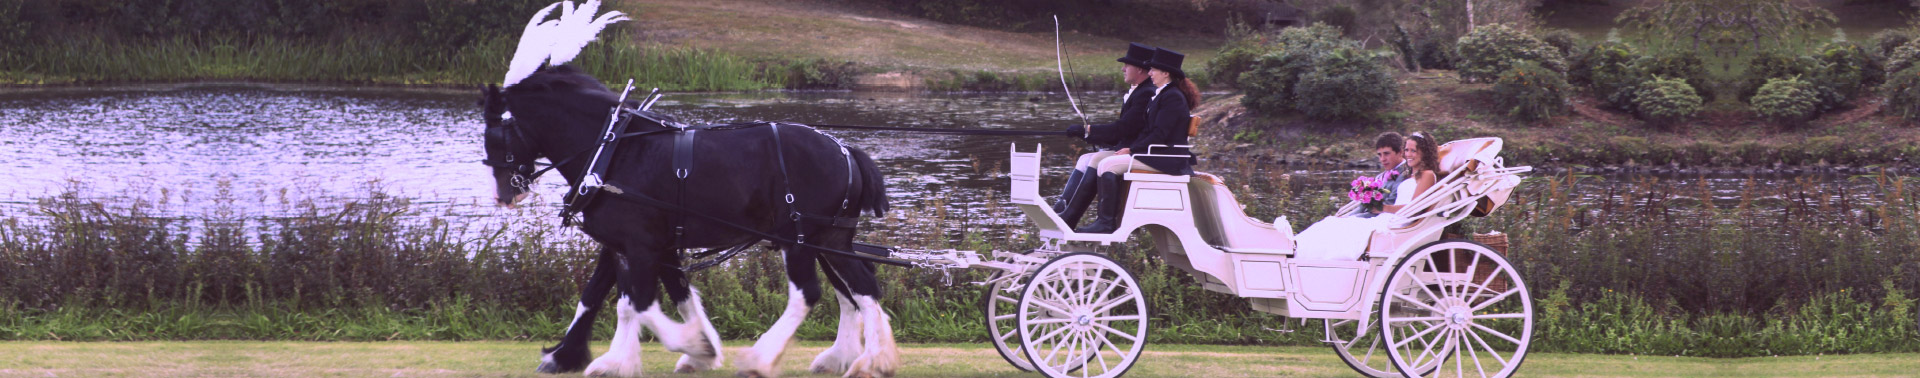 1920x378 Carriages For Sale Carriage Types Horse And Carriage Wedding